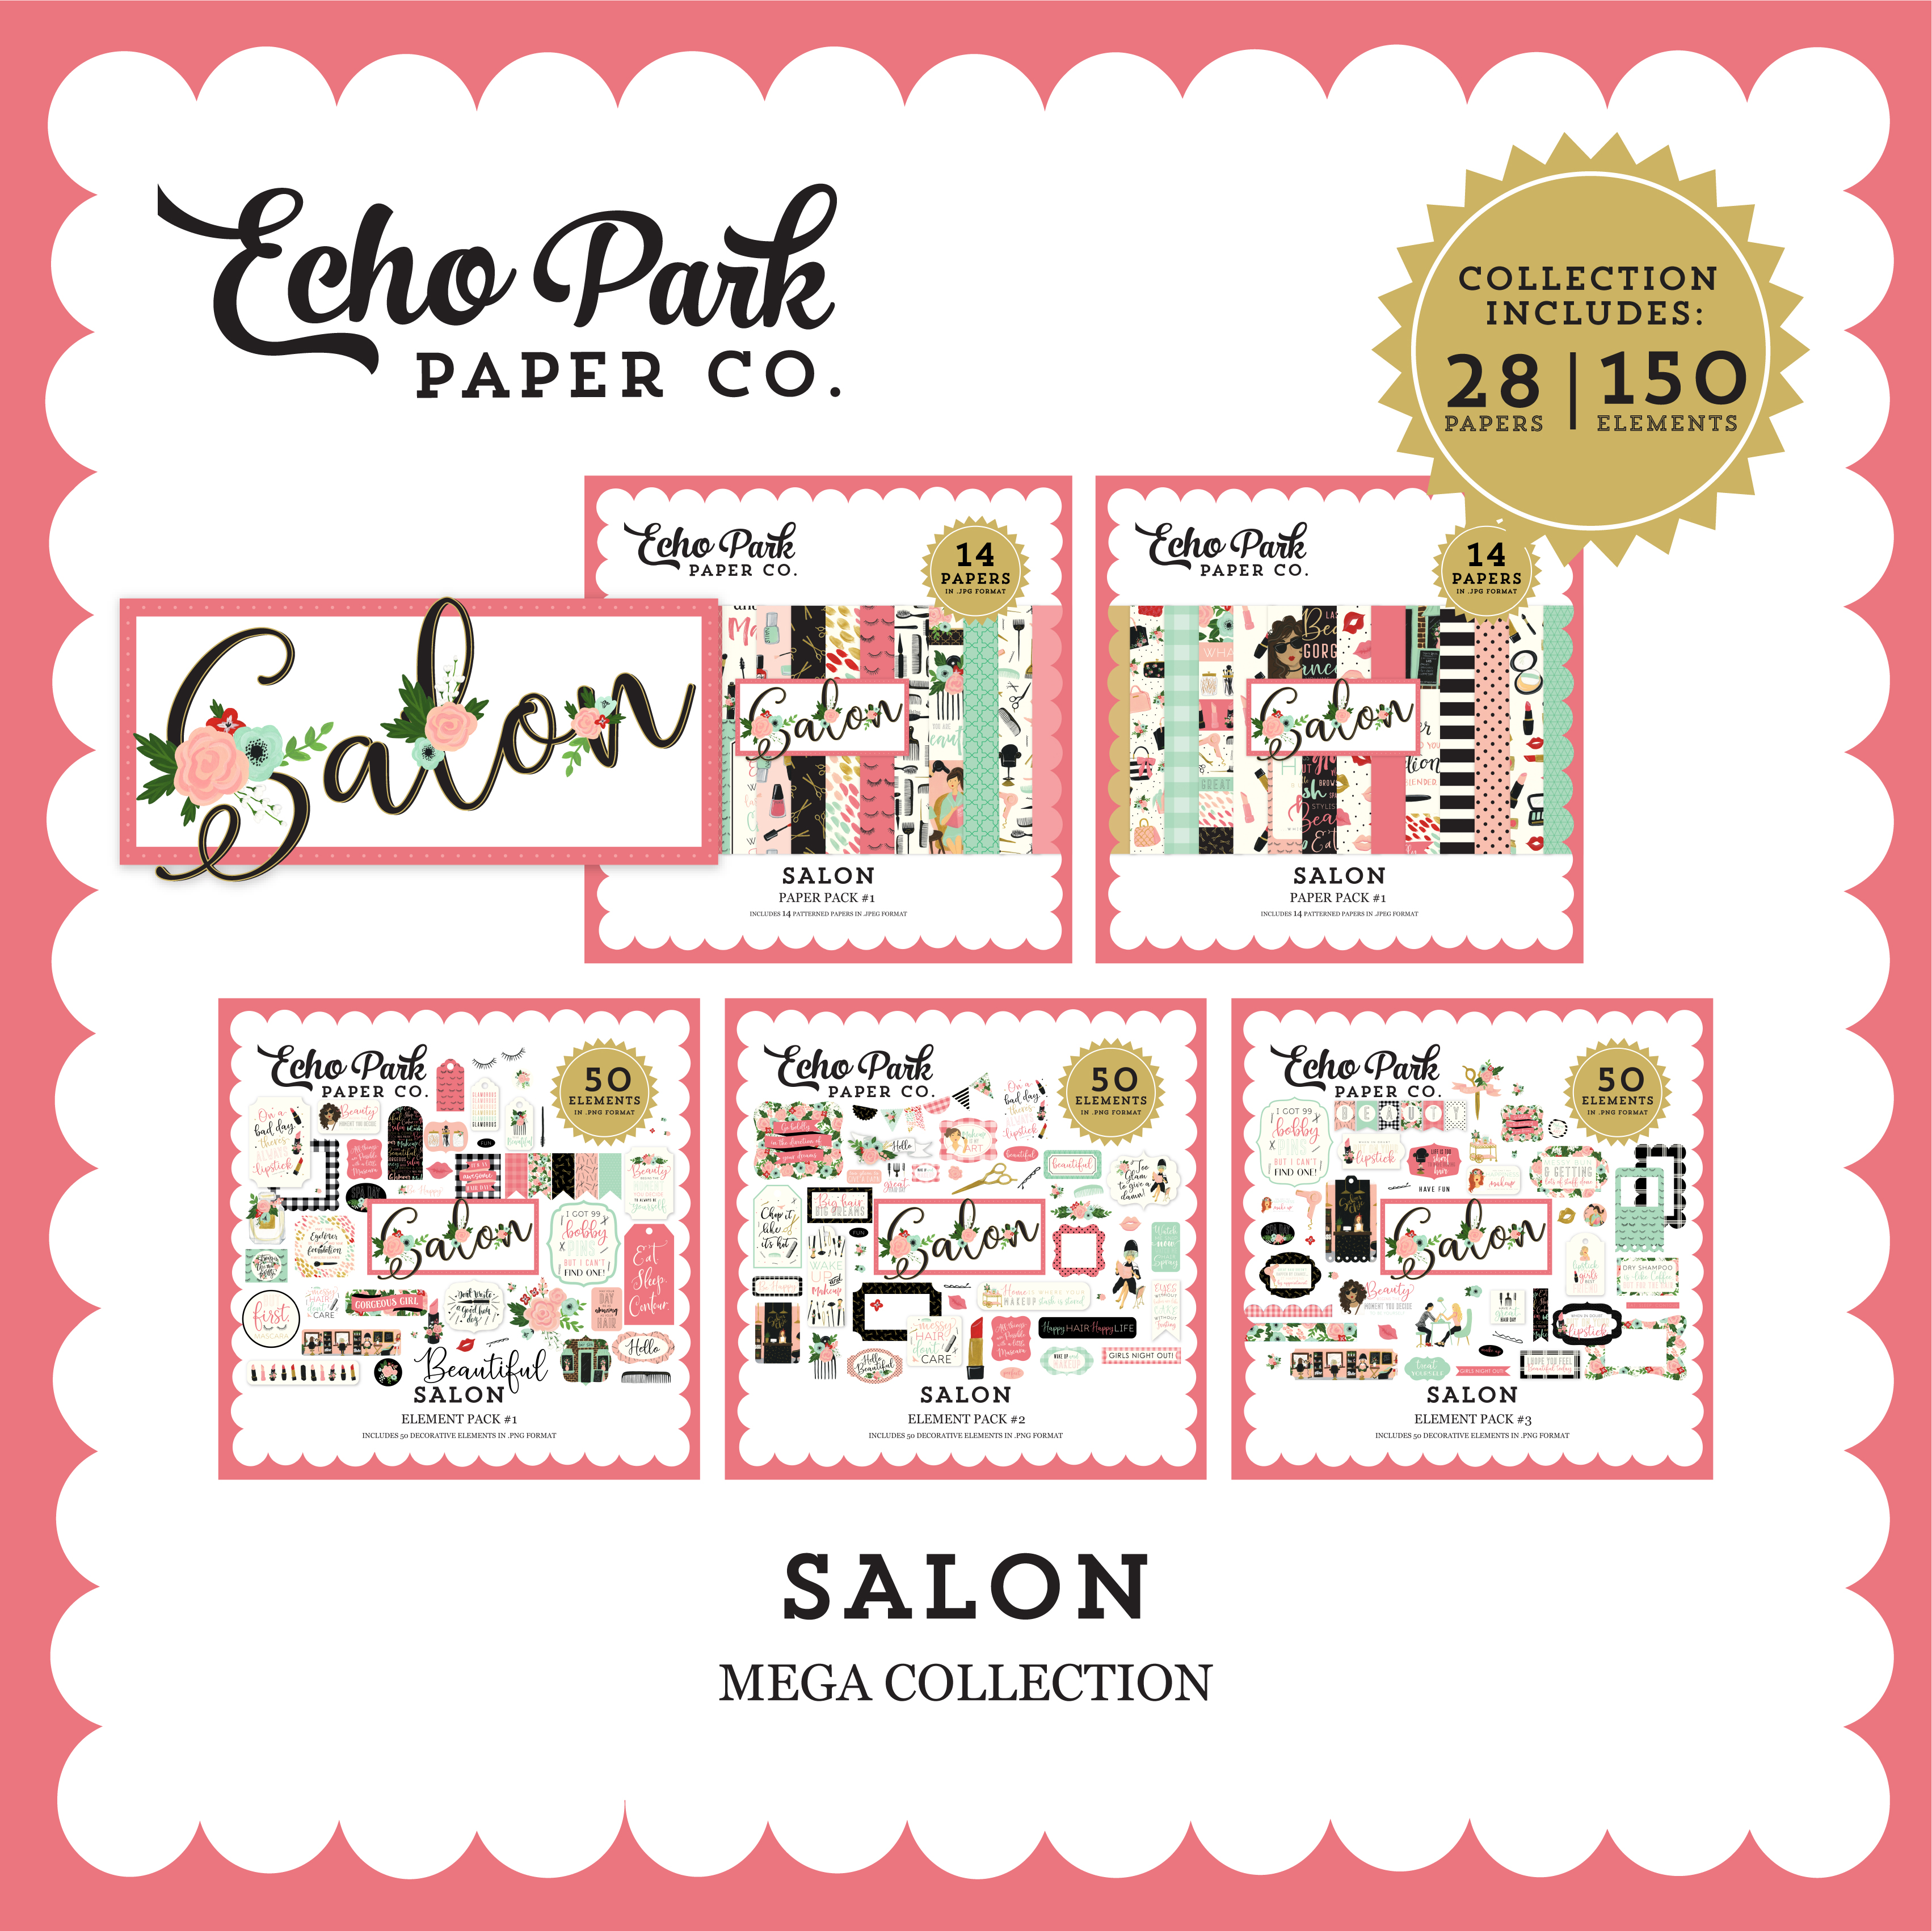 Salon Mega Collection